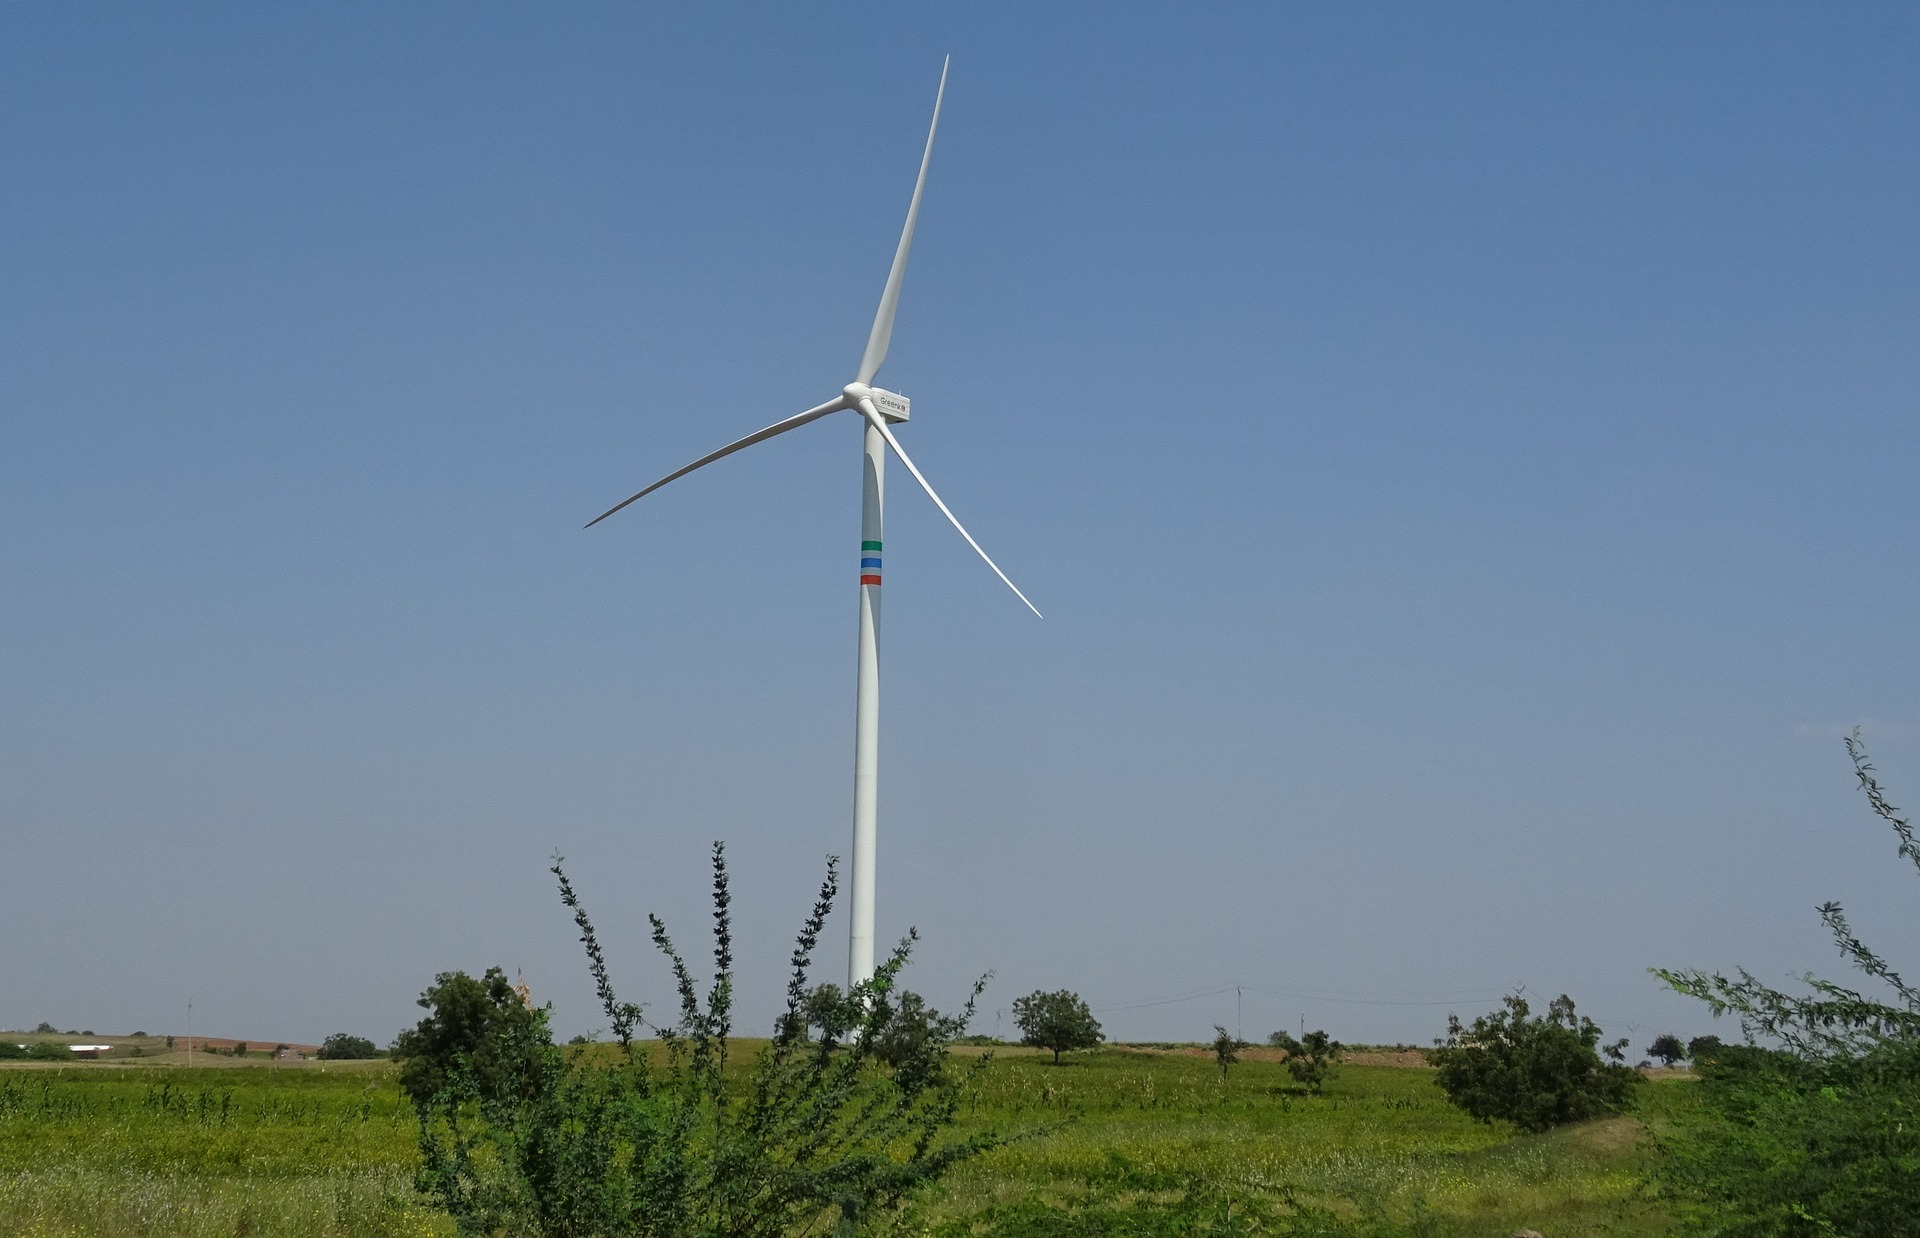 Suzlon and India are facing at least a year of low growth ...